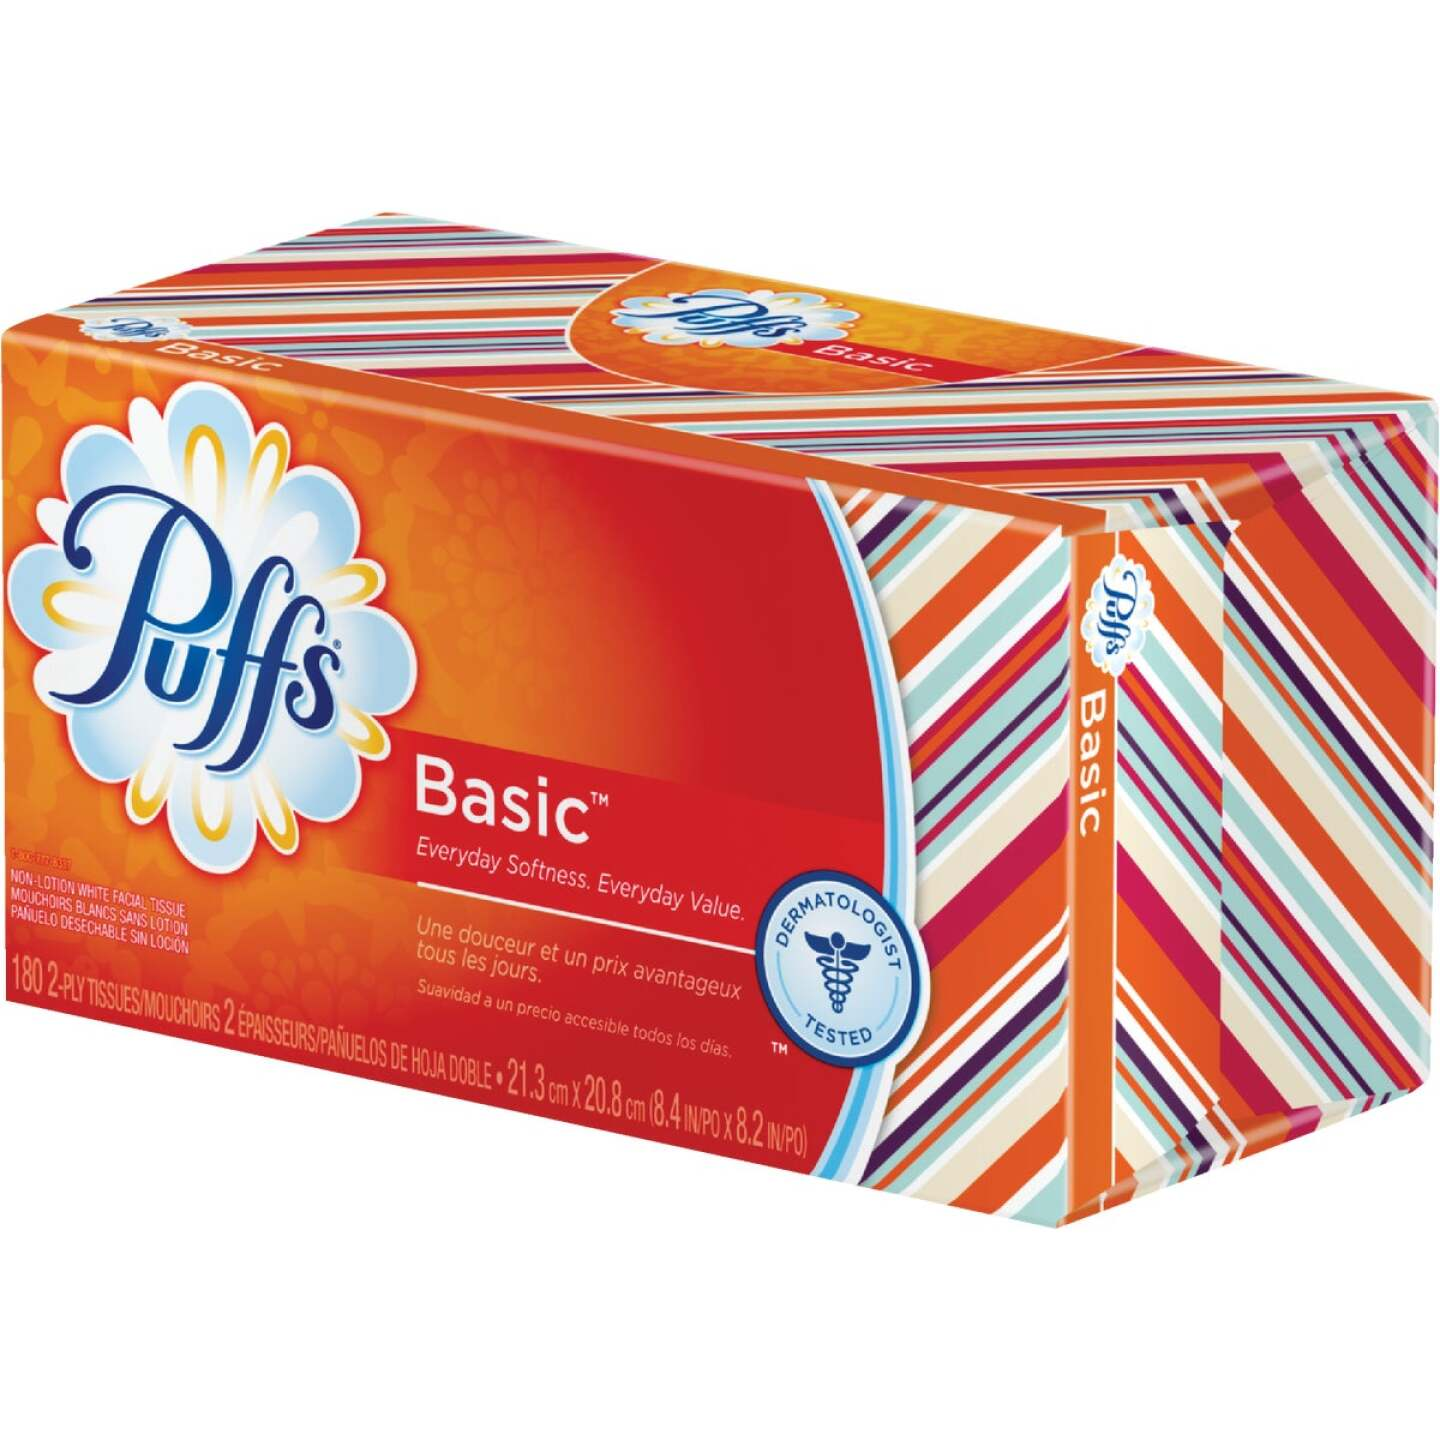 Puffs Basic 180 Count 2-Ply White Facial Tissue Image 1